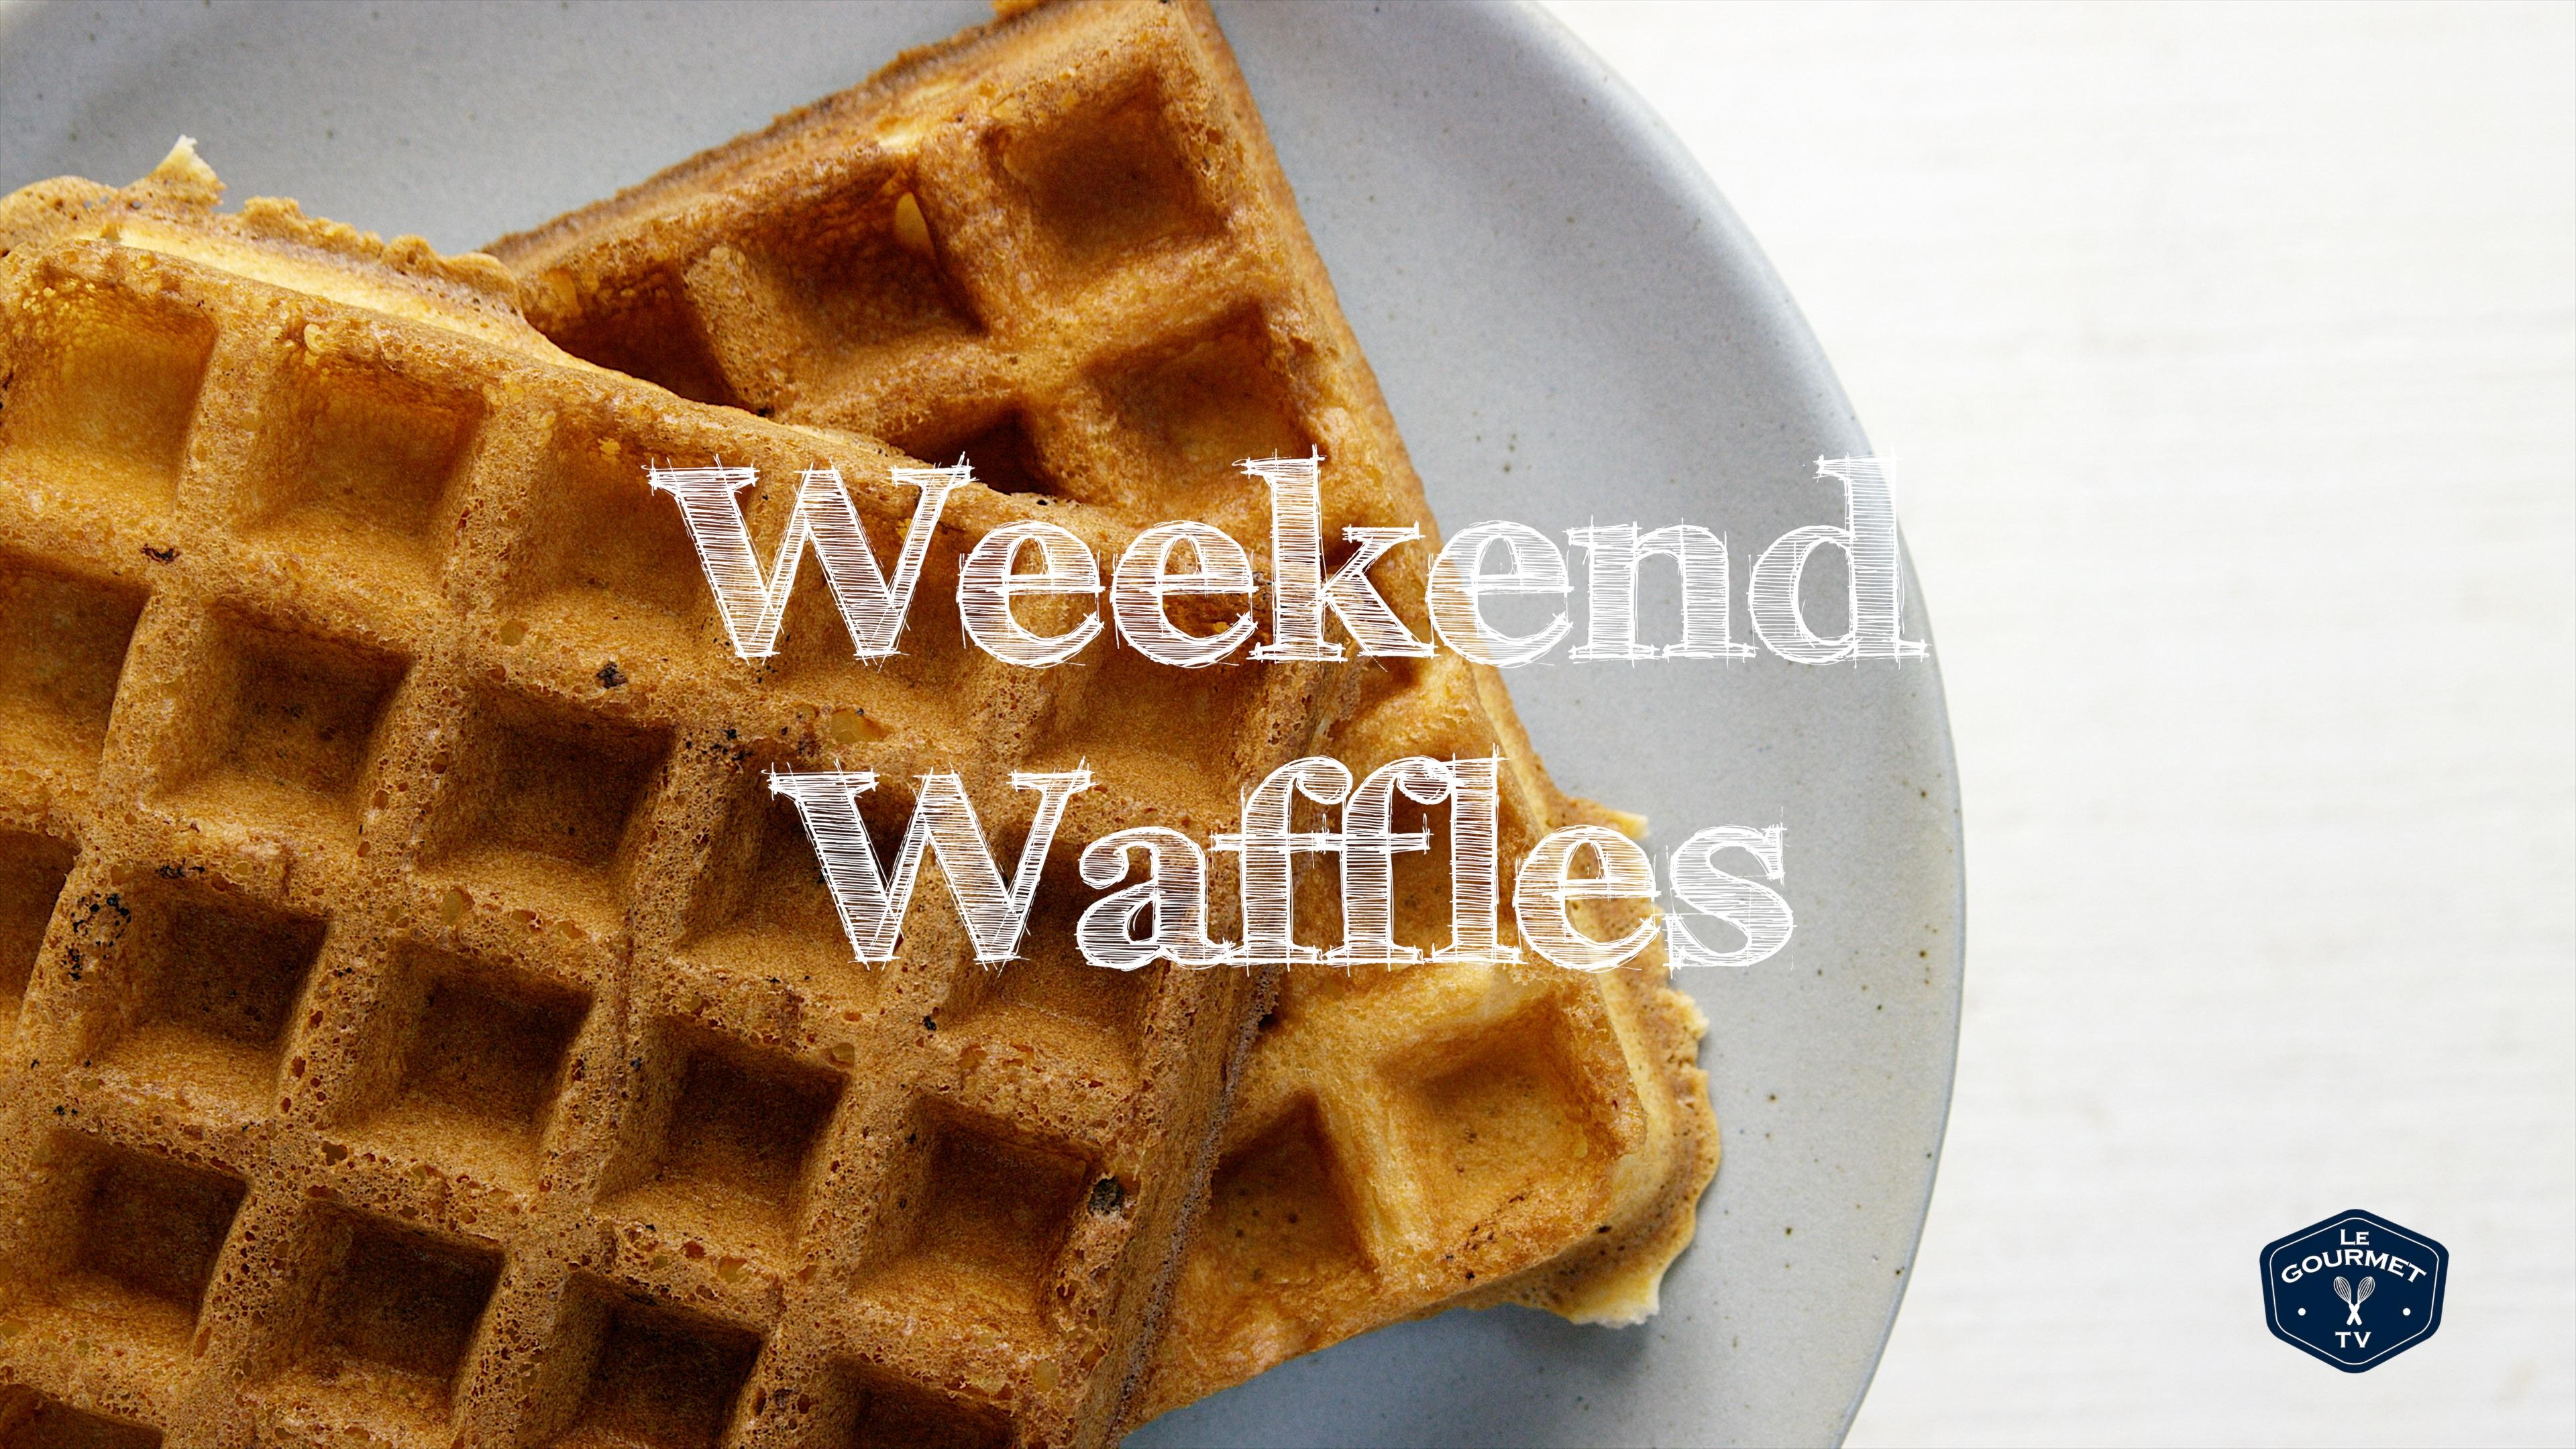 How to Make Weekend Waffles